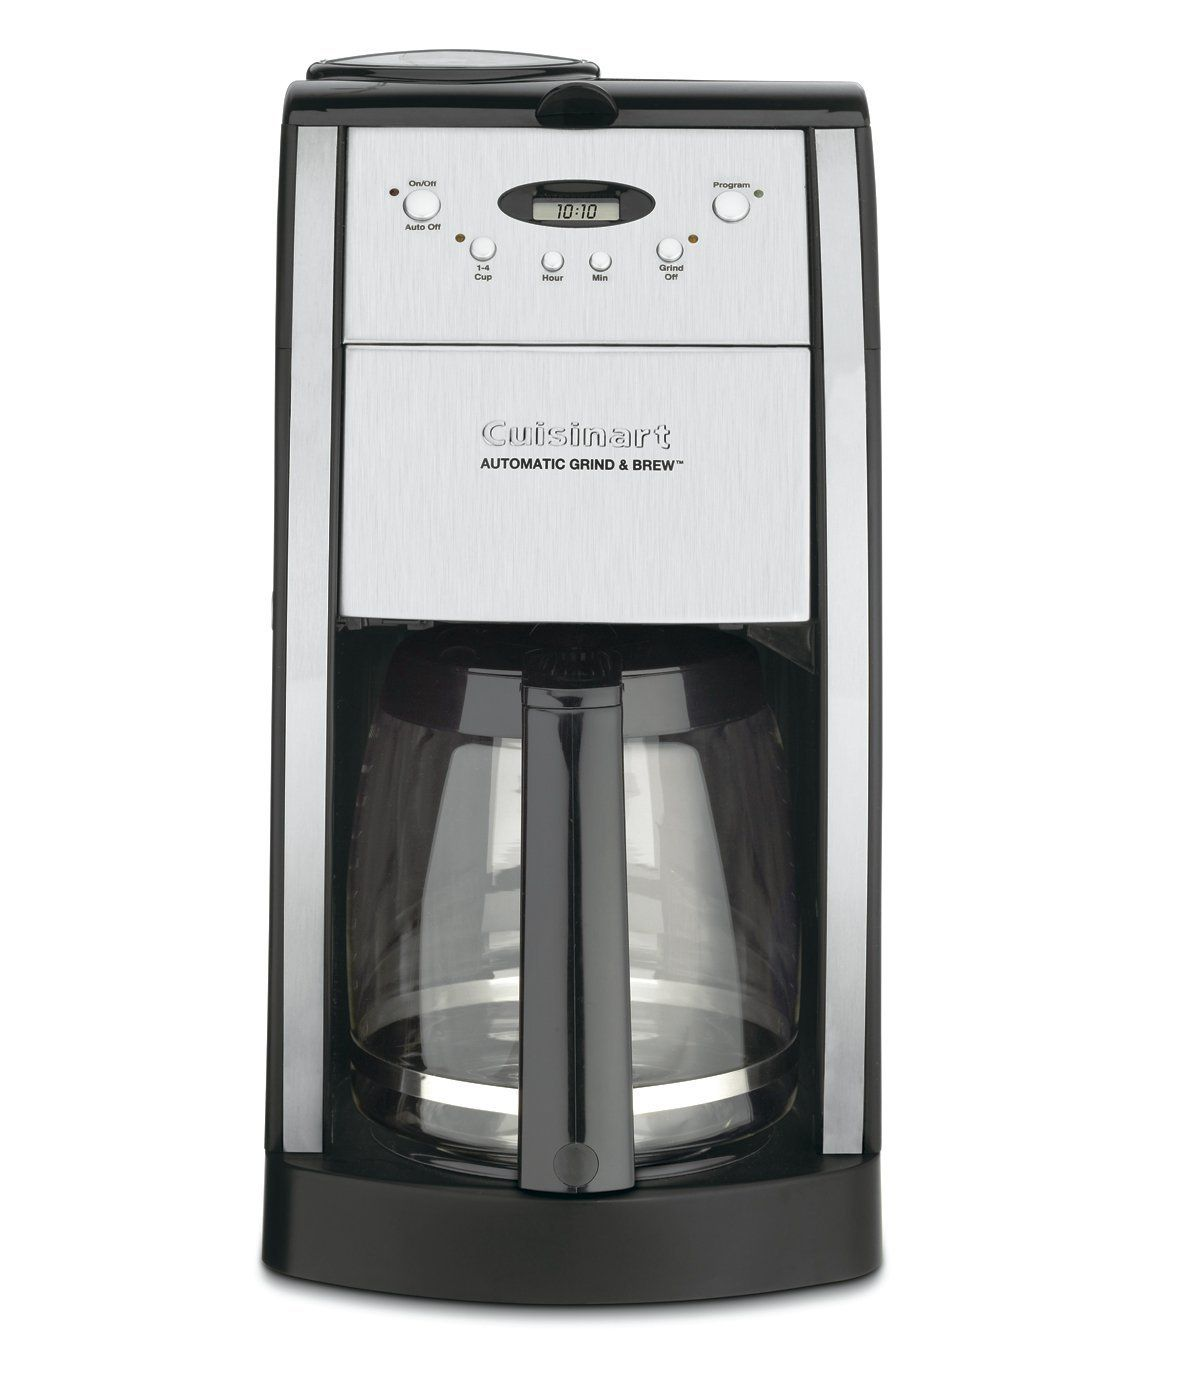 Cuisinart dgb550bkfr 12 cup grind and brew automatic